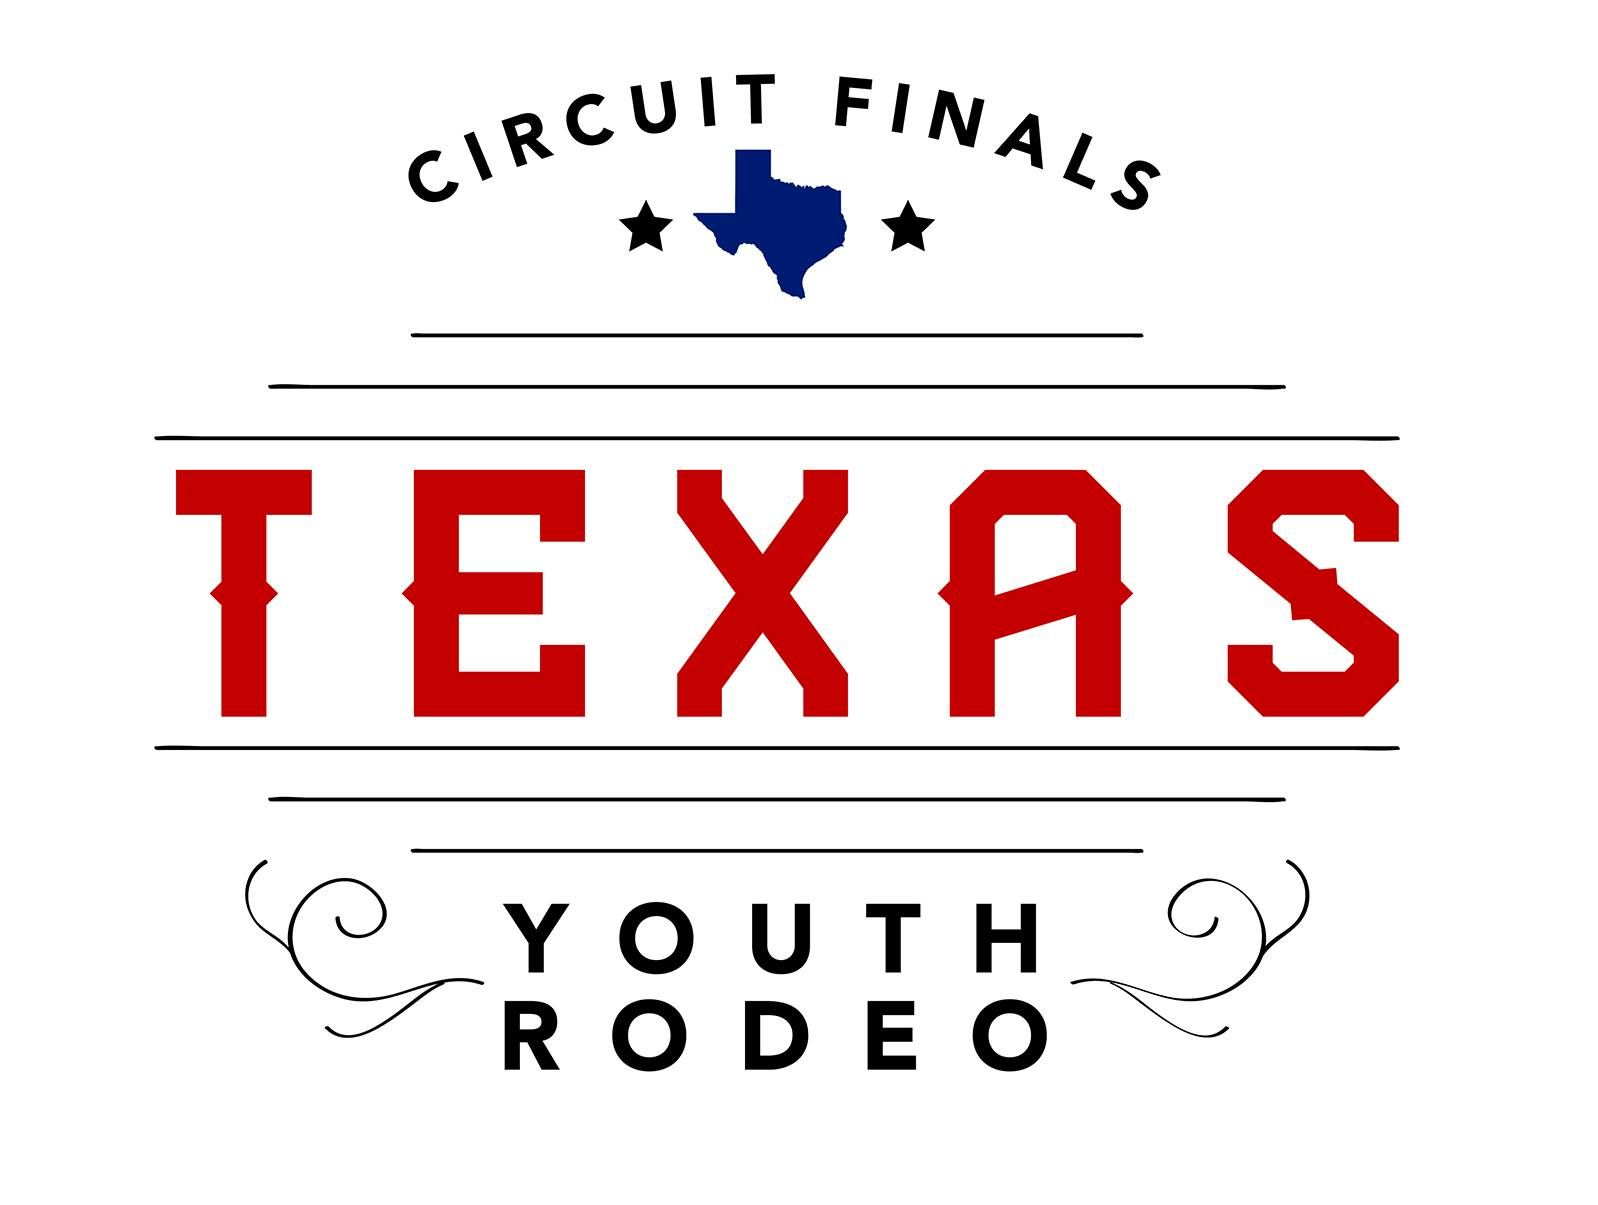 Texas Circuit Finals Youth Rodeo